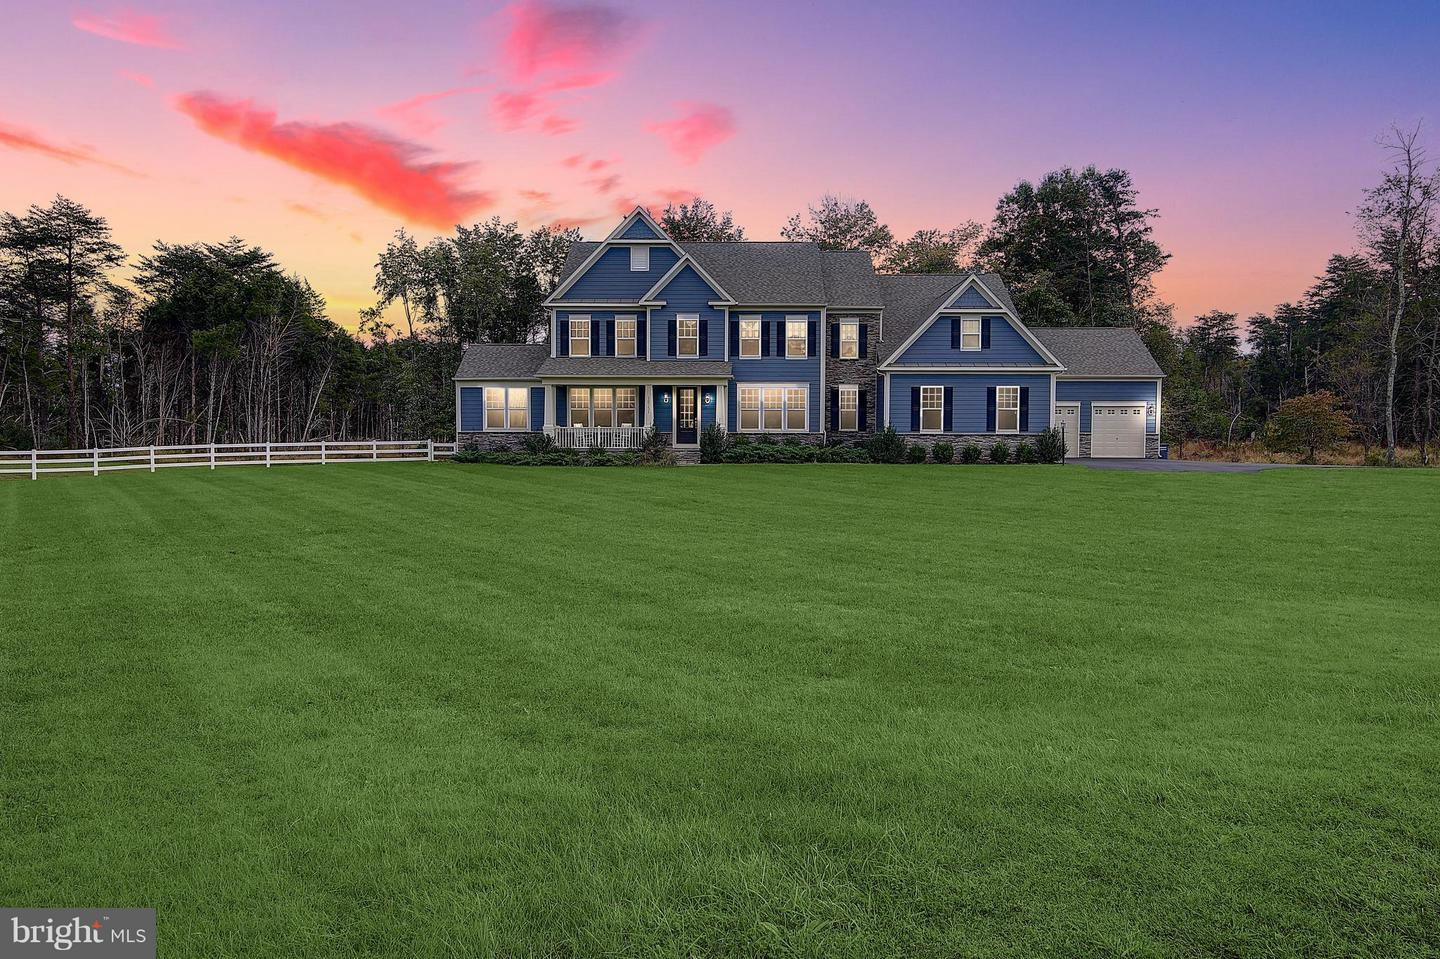 Single Family Home for Sale at 16751 Lord Sudley Drive 16751 Lord Sudley Drive Centreville, Virginia 20120 United States